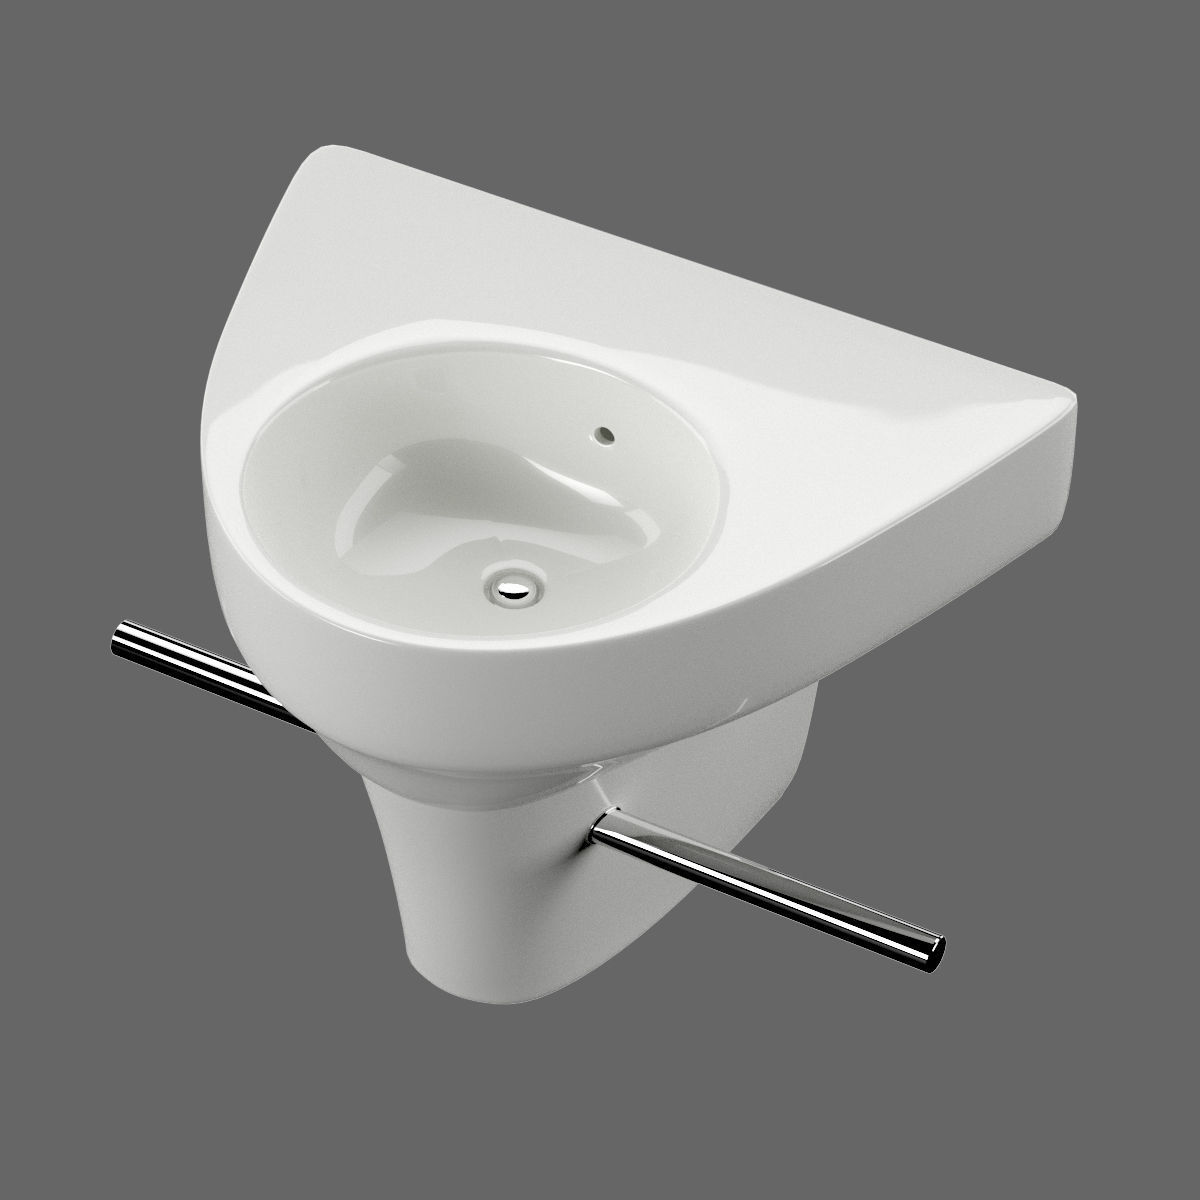 Washbasin Duravit Starck 2 Art 071450 3D Model